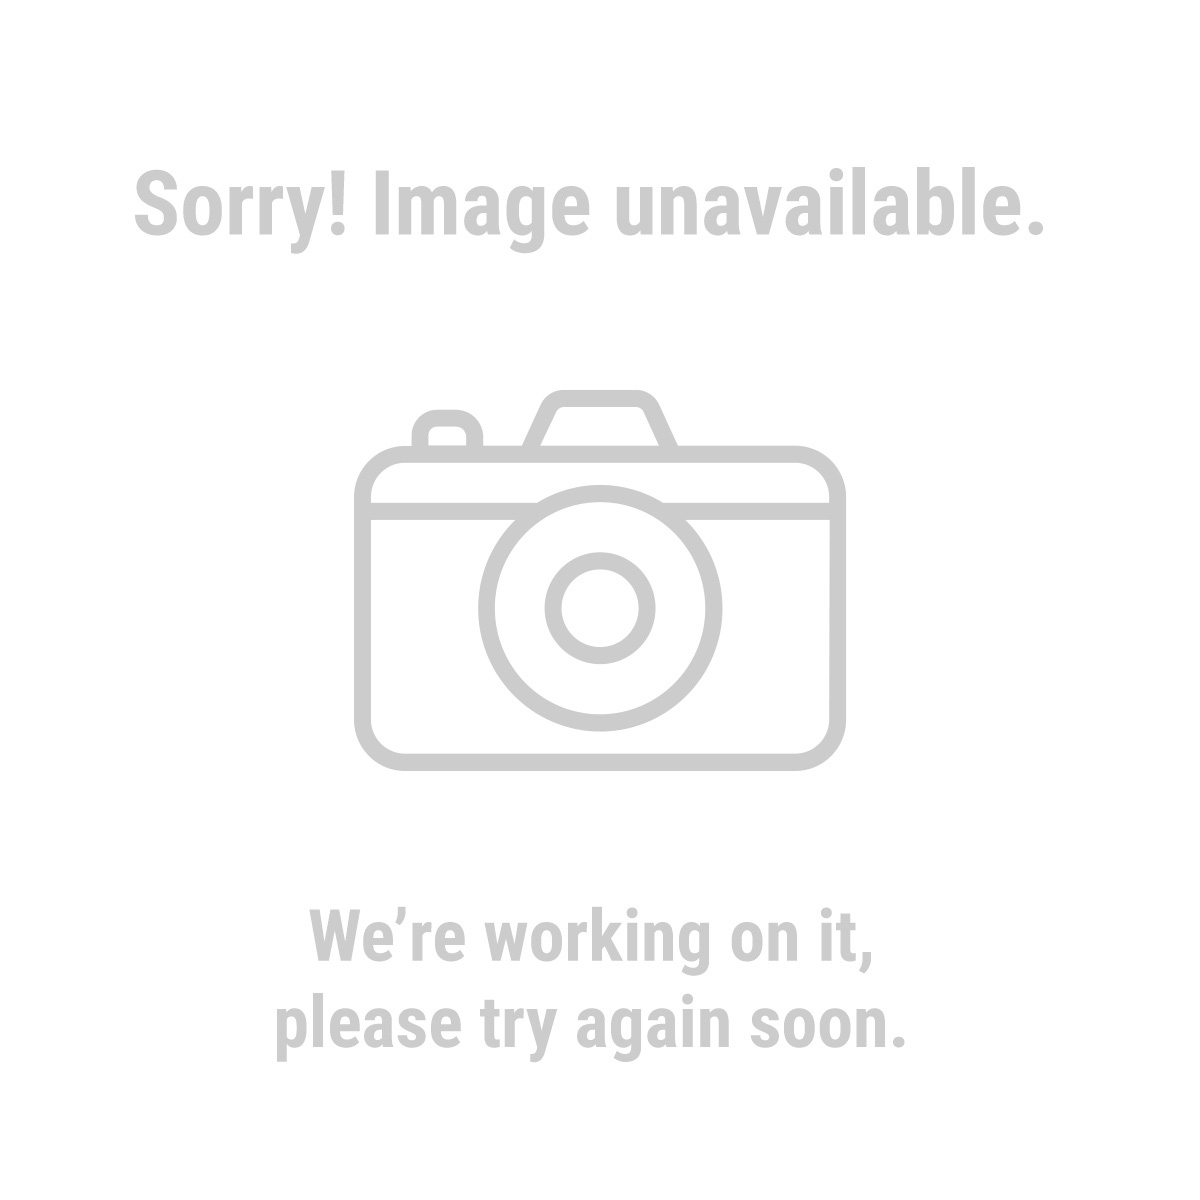 Central Pneumatic 68249 160 PSI Dry Gauge